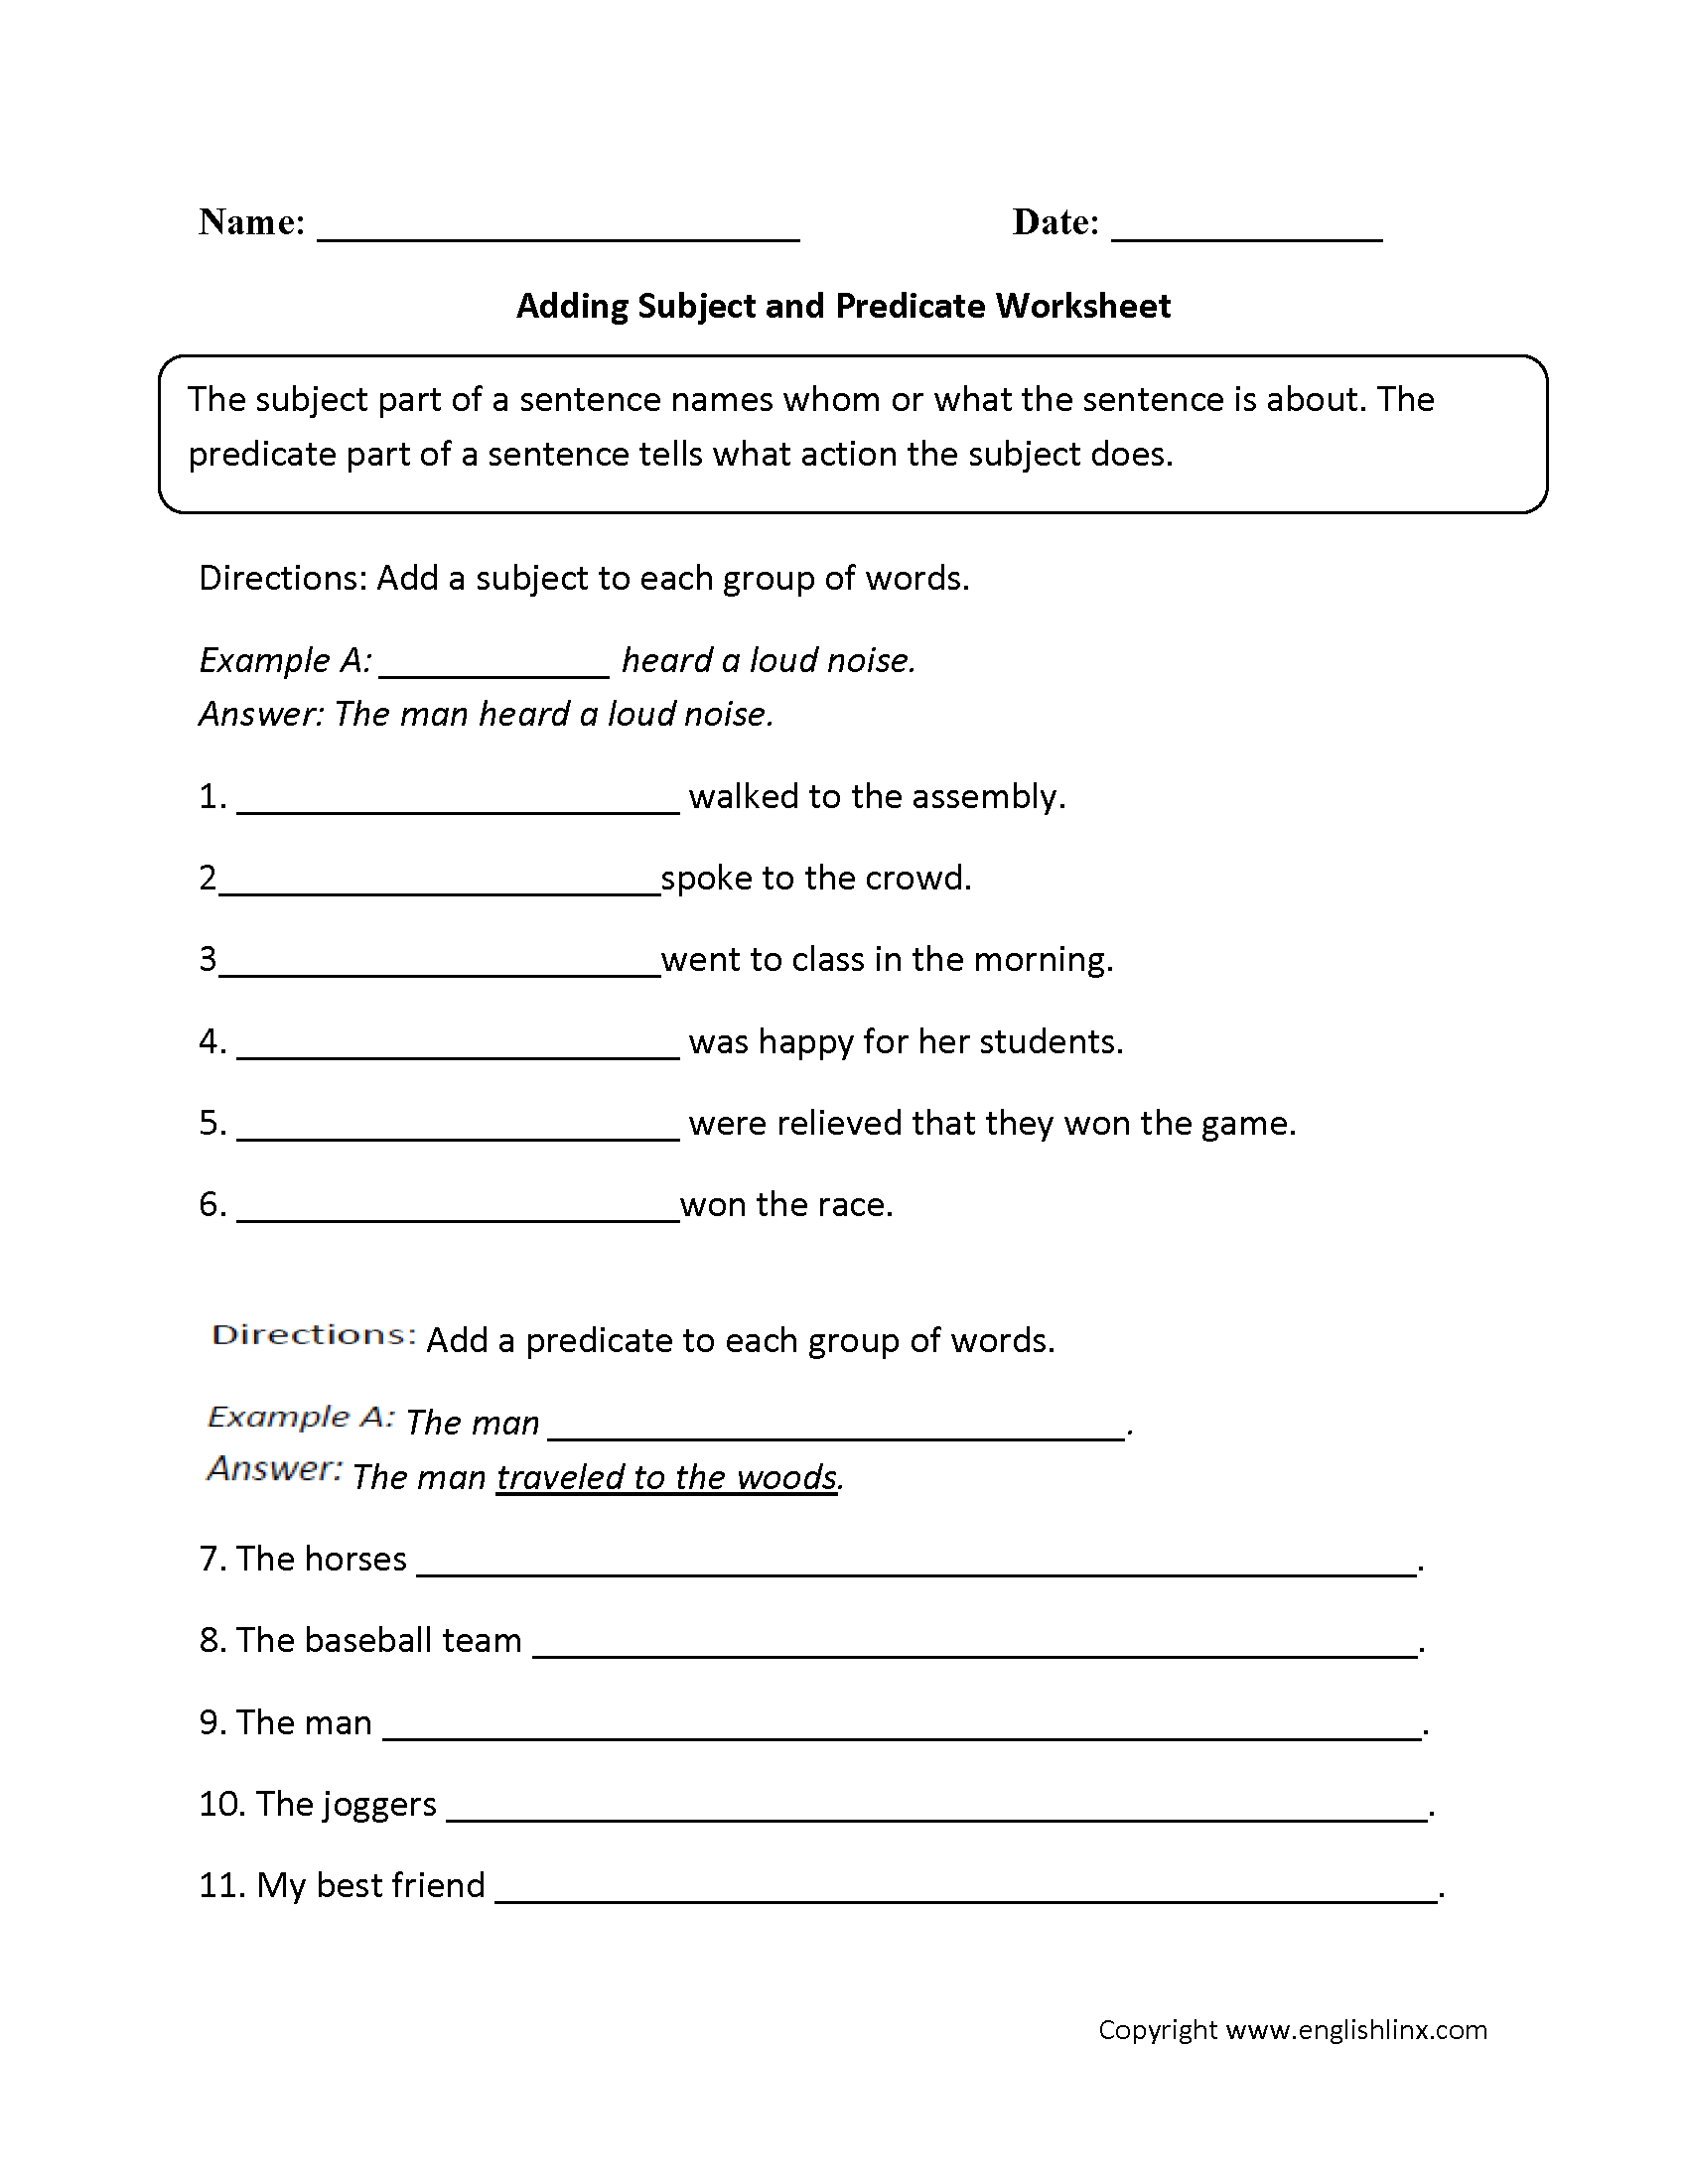 Parts Of A Sentence Worksheets | Subject And Predicate Worksheets | Grade 7 English Worksheets Printable